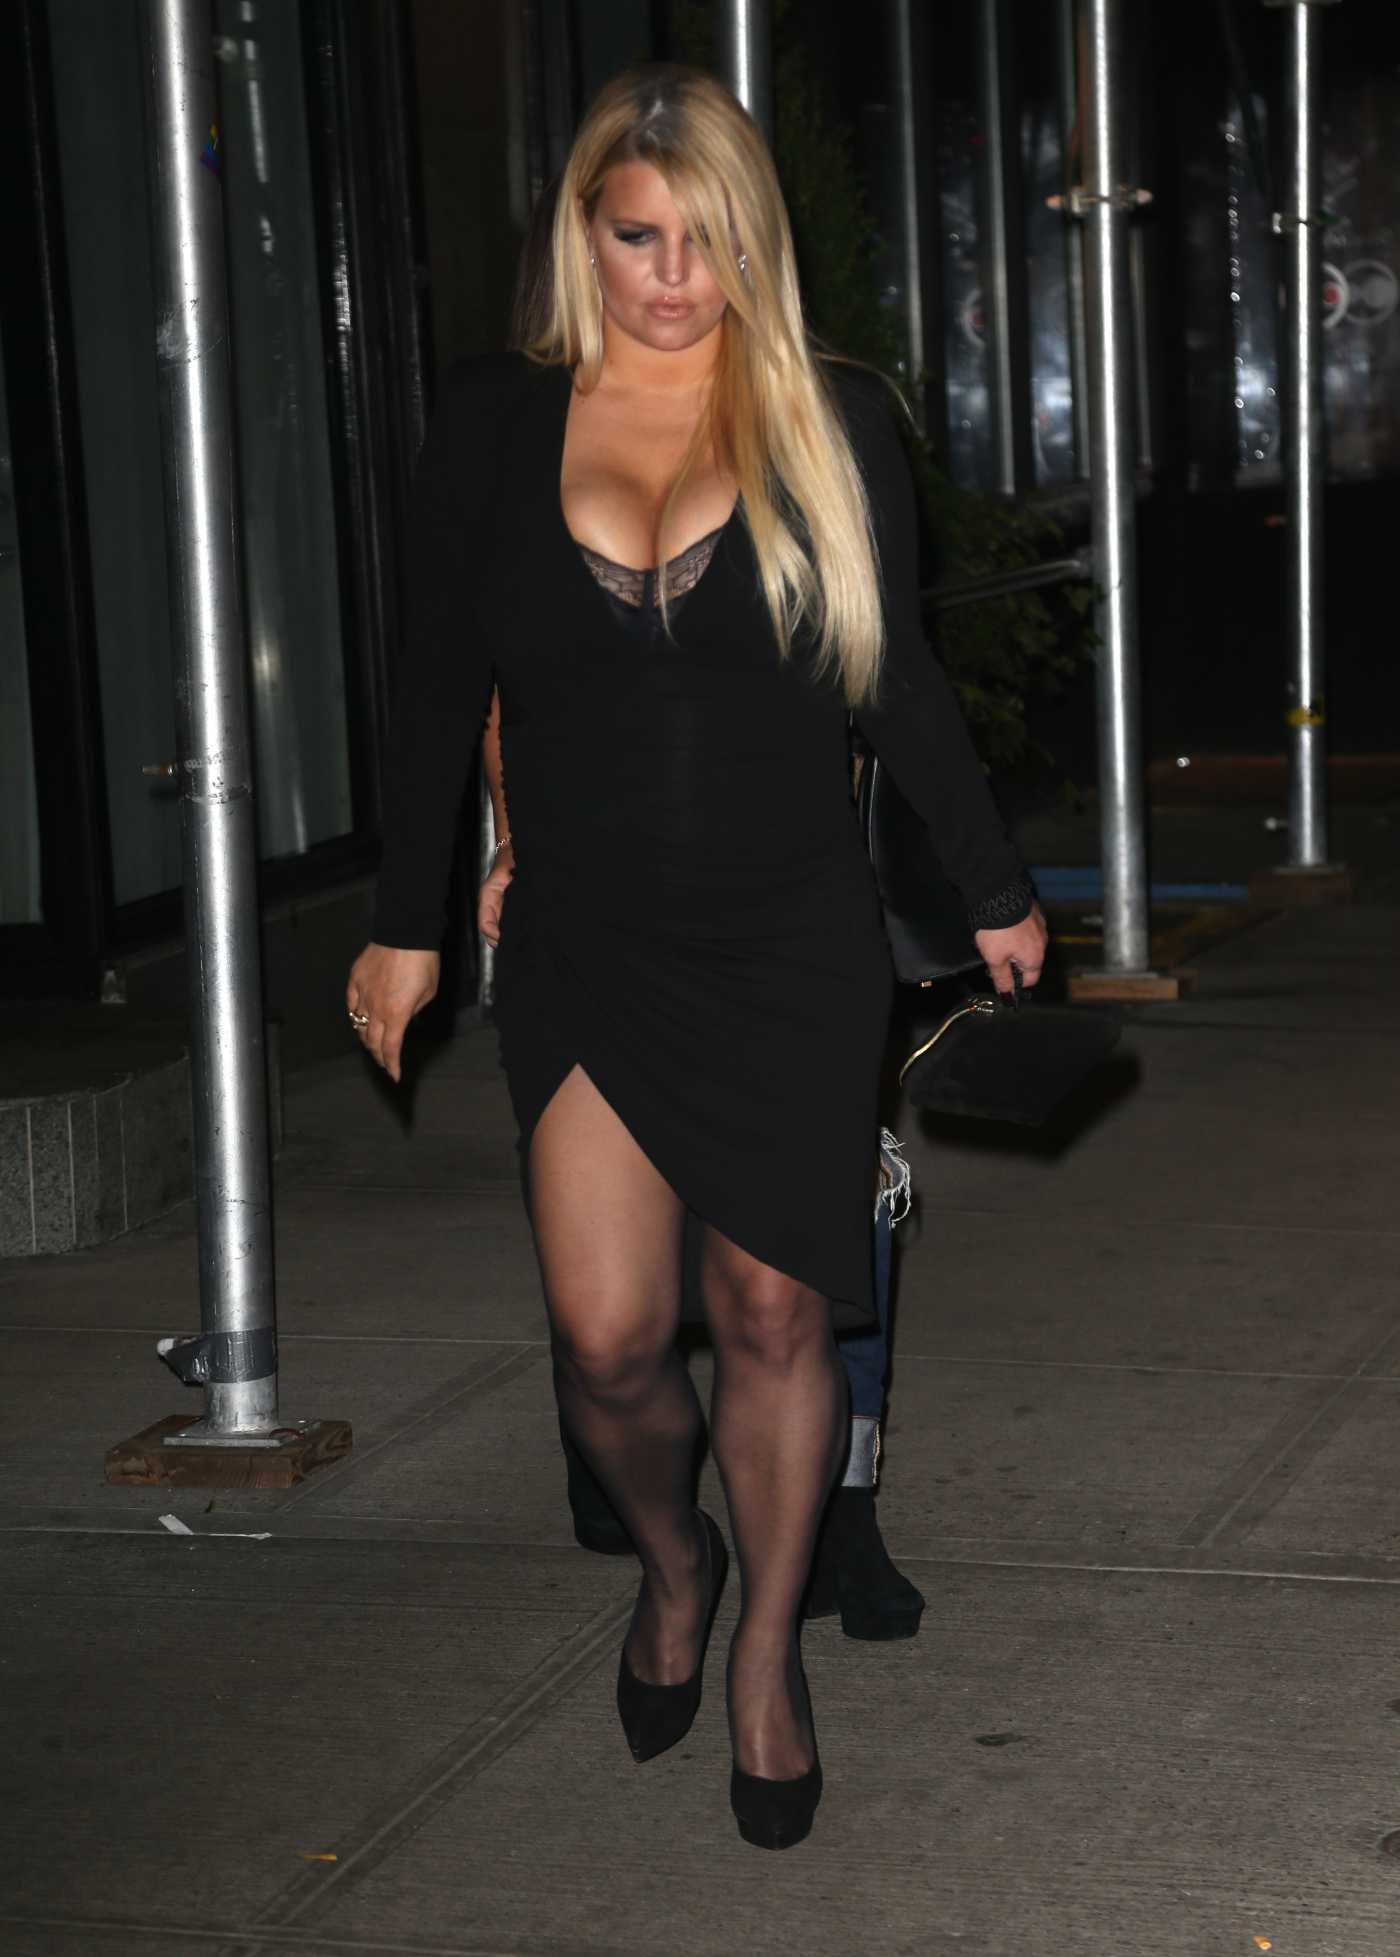 Jessica Simpson in a Black Dress Night Out in New York 09/25/2019